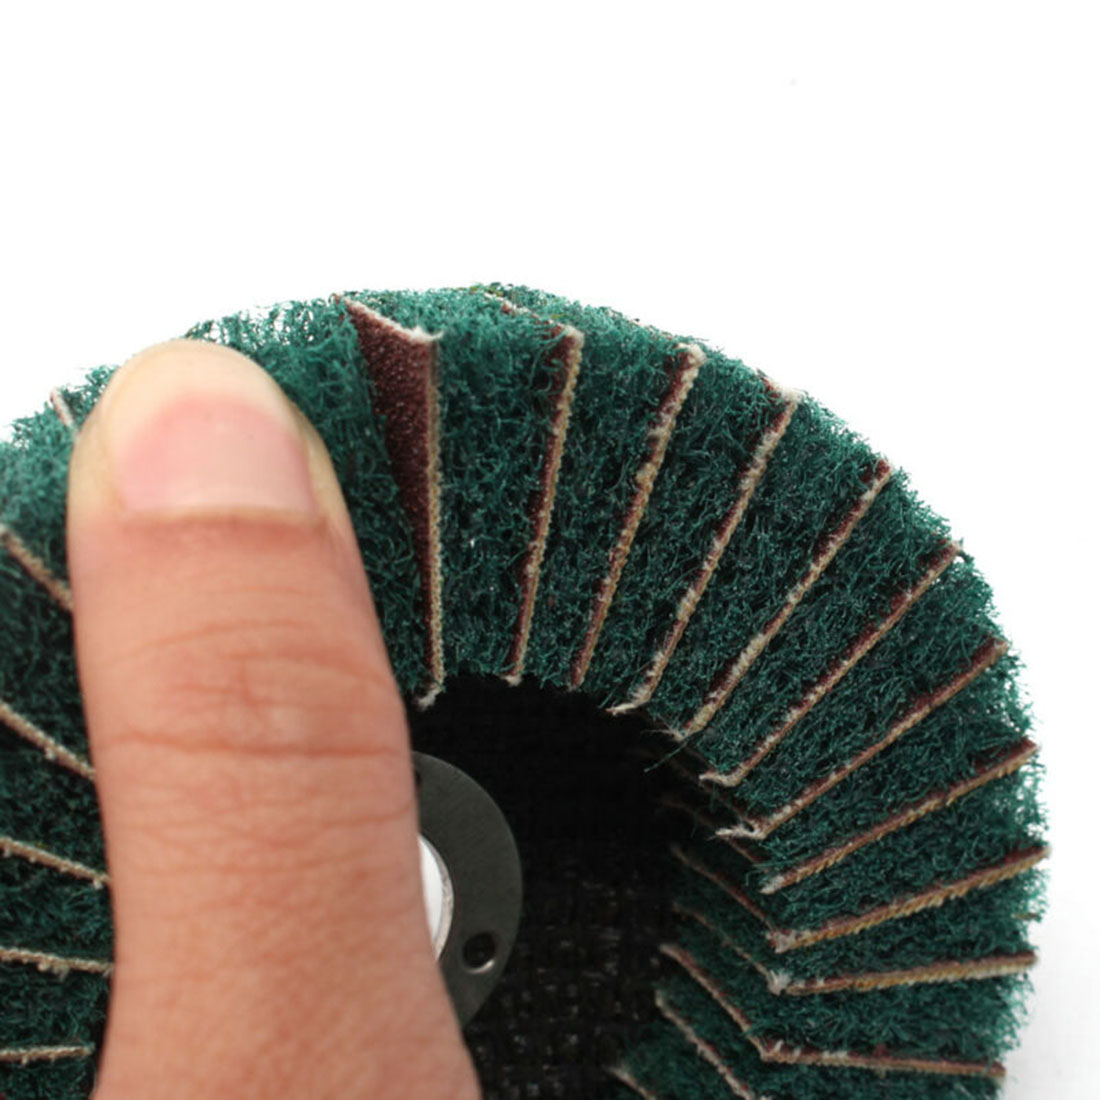 Metal Flap Disc Plastic Buffer Grinder Tools 4 Inch Scouring Pad Green